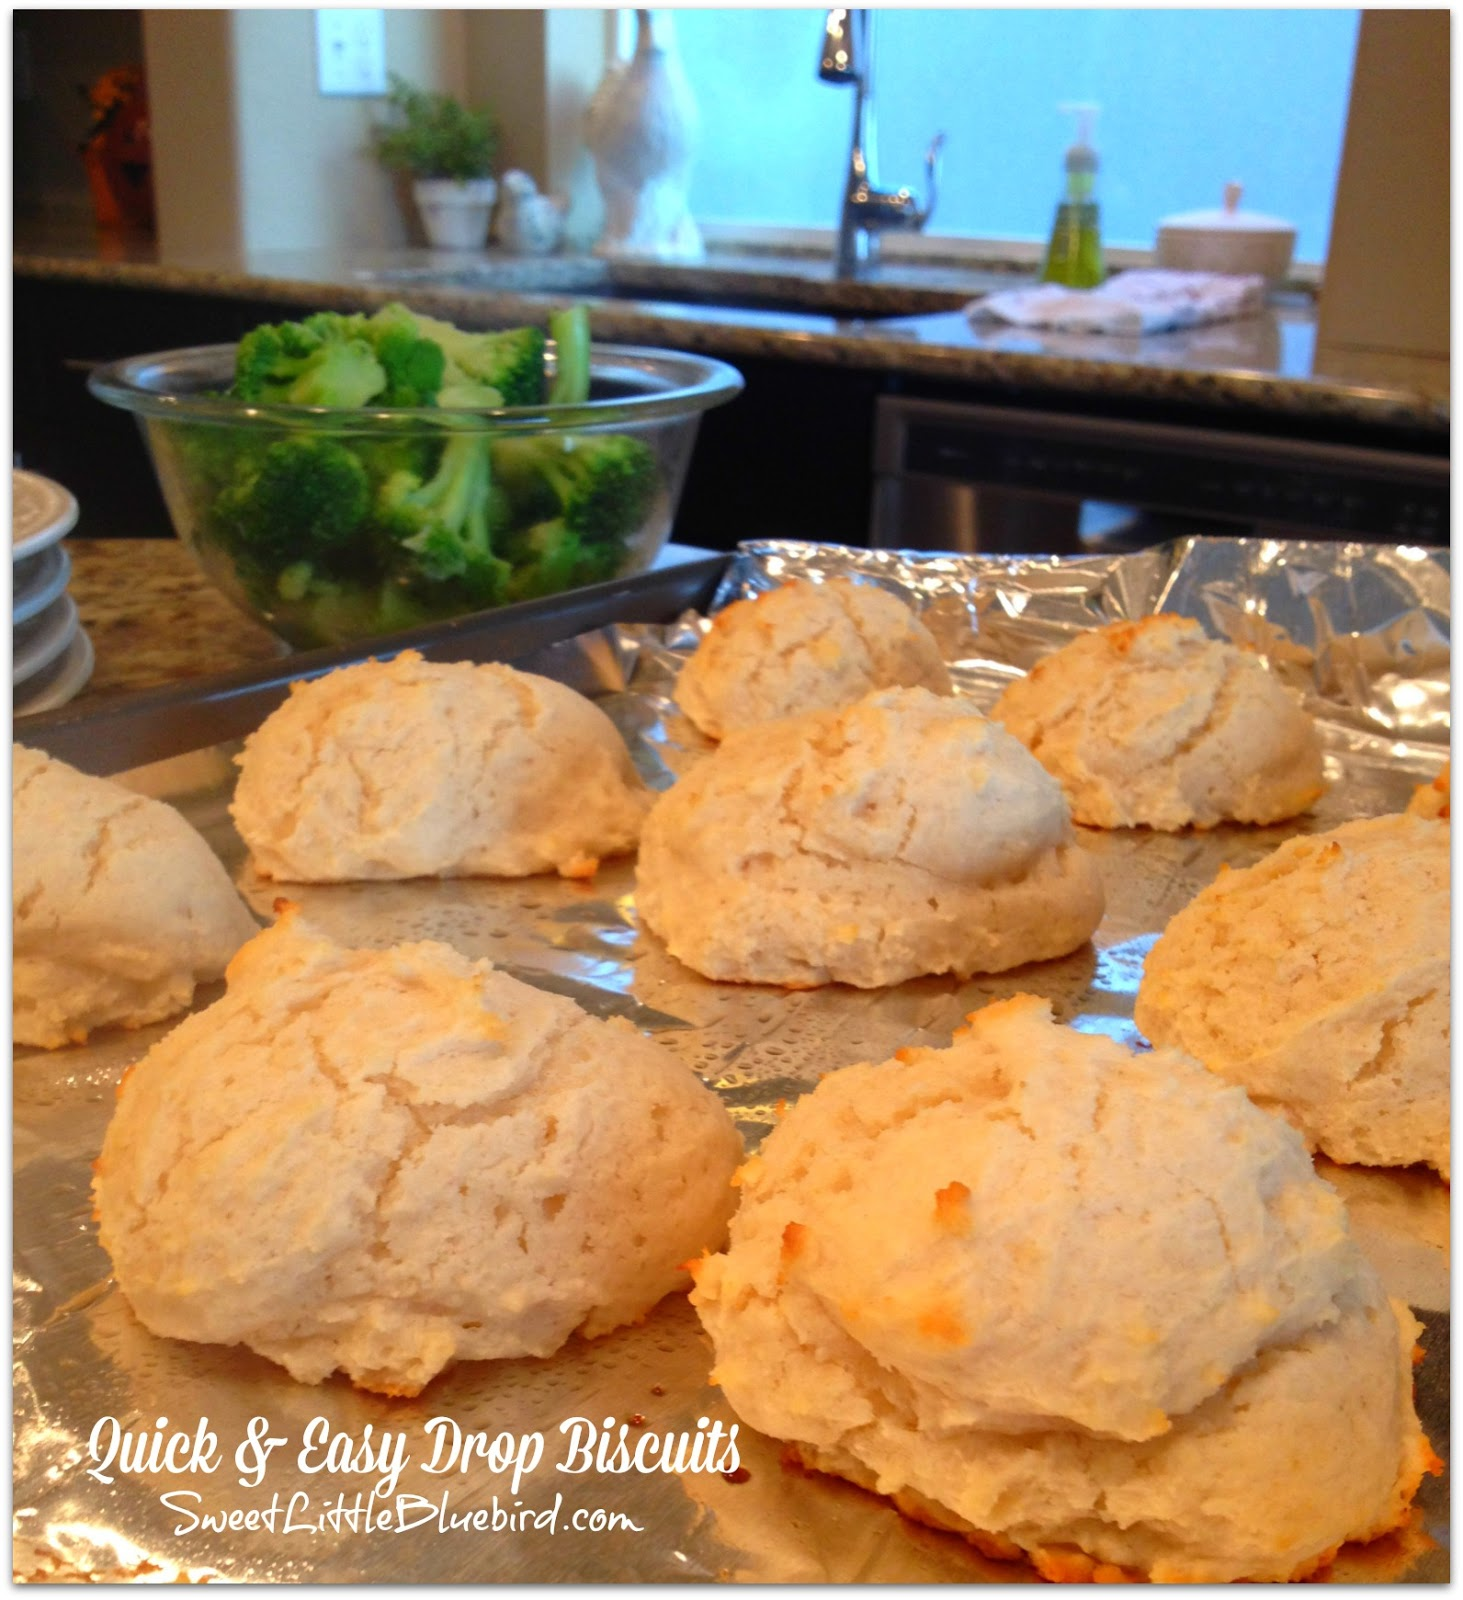 Quick and Easy Drop Biscuits - Sweet Little Bluebird